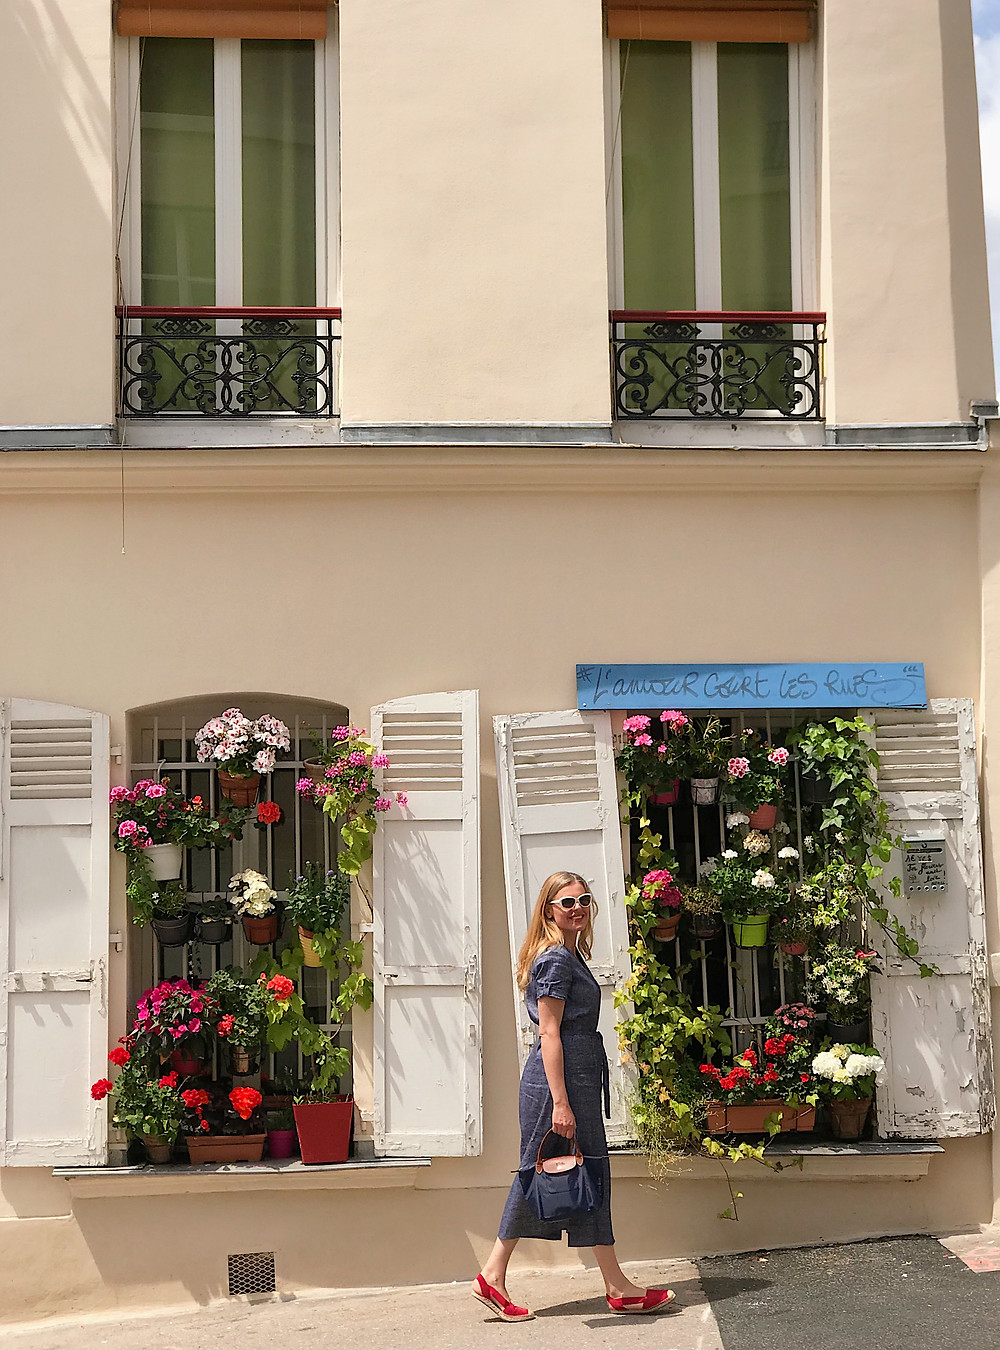 woman walking in front of windows full of flowers